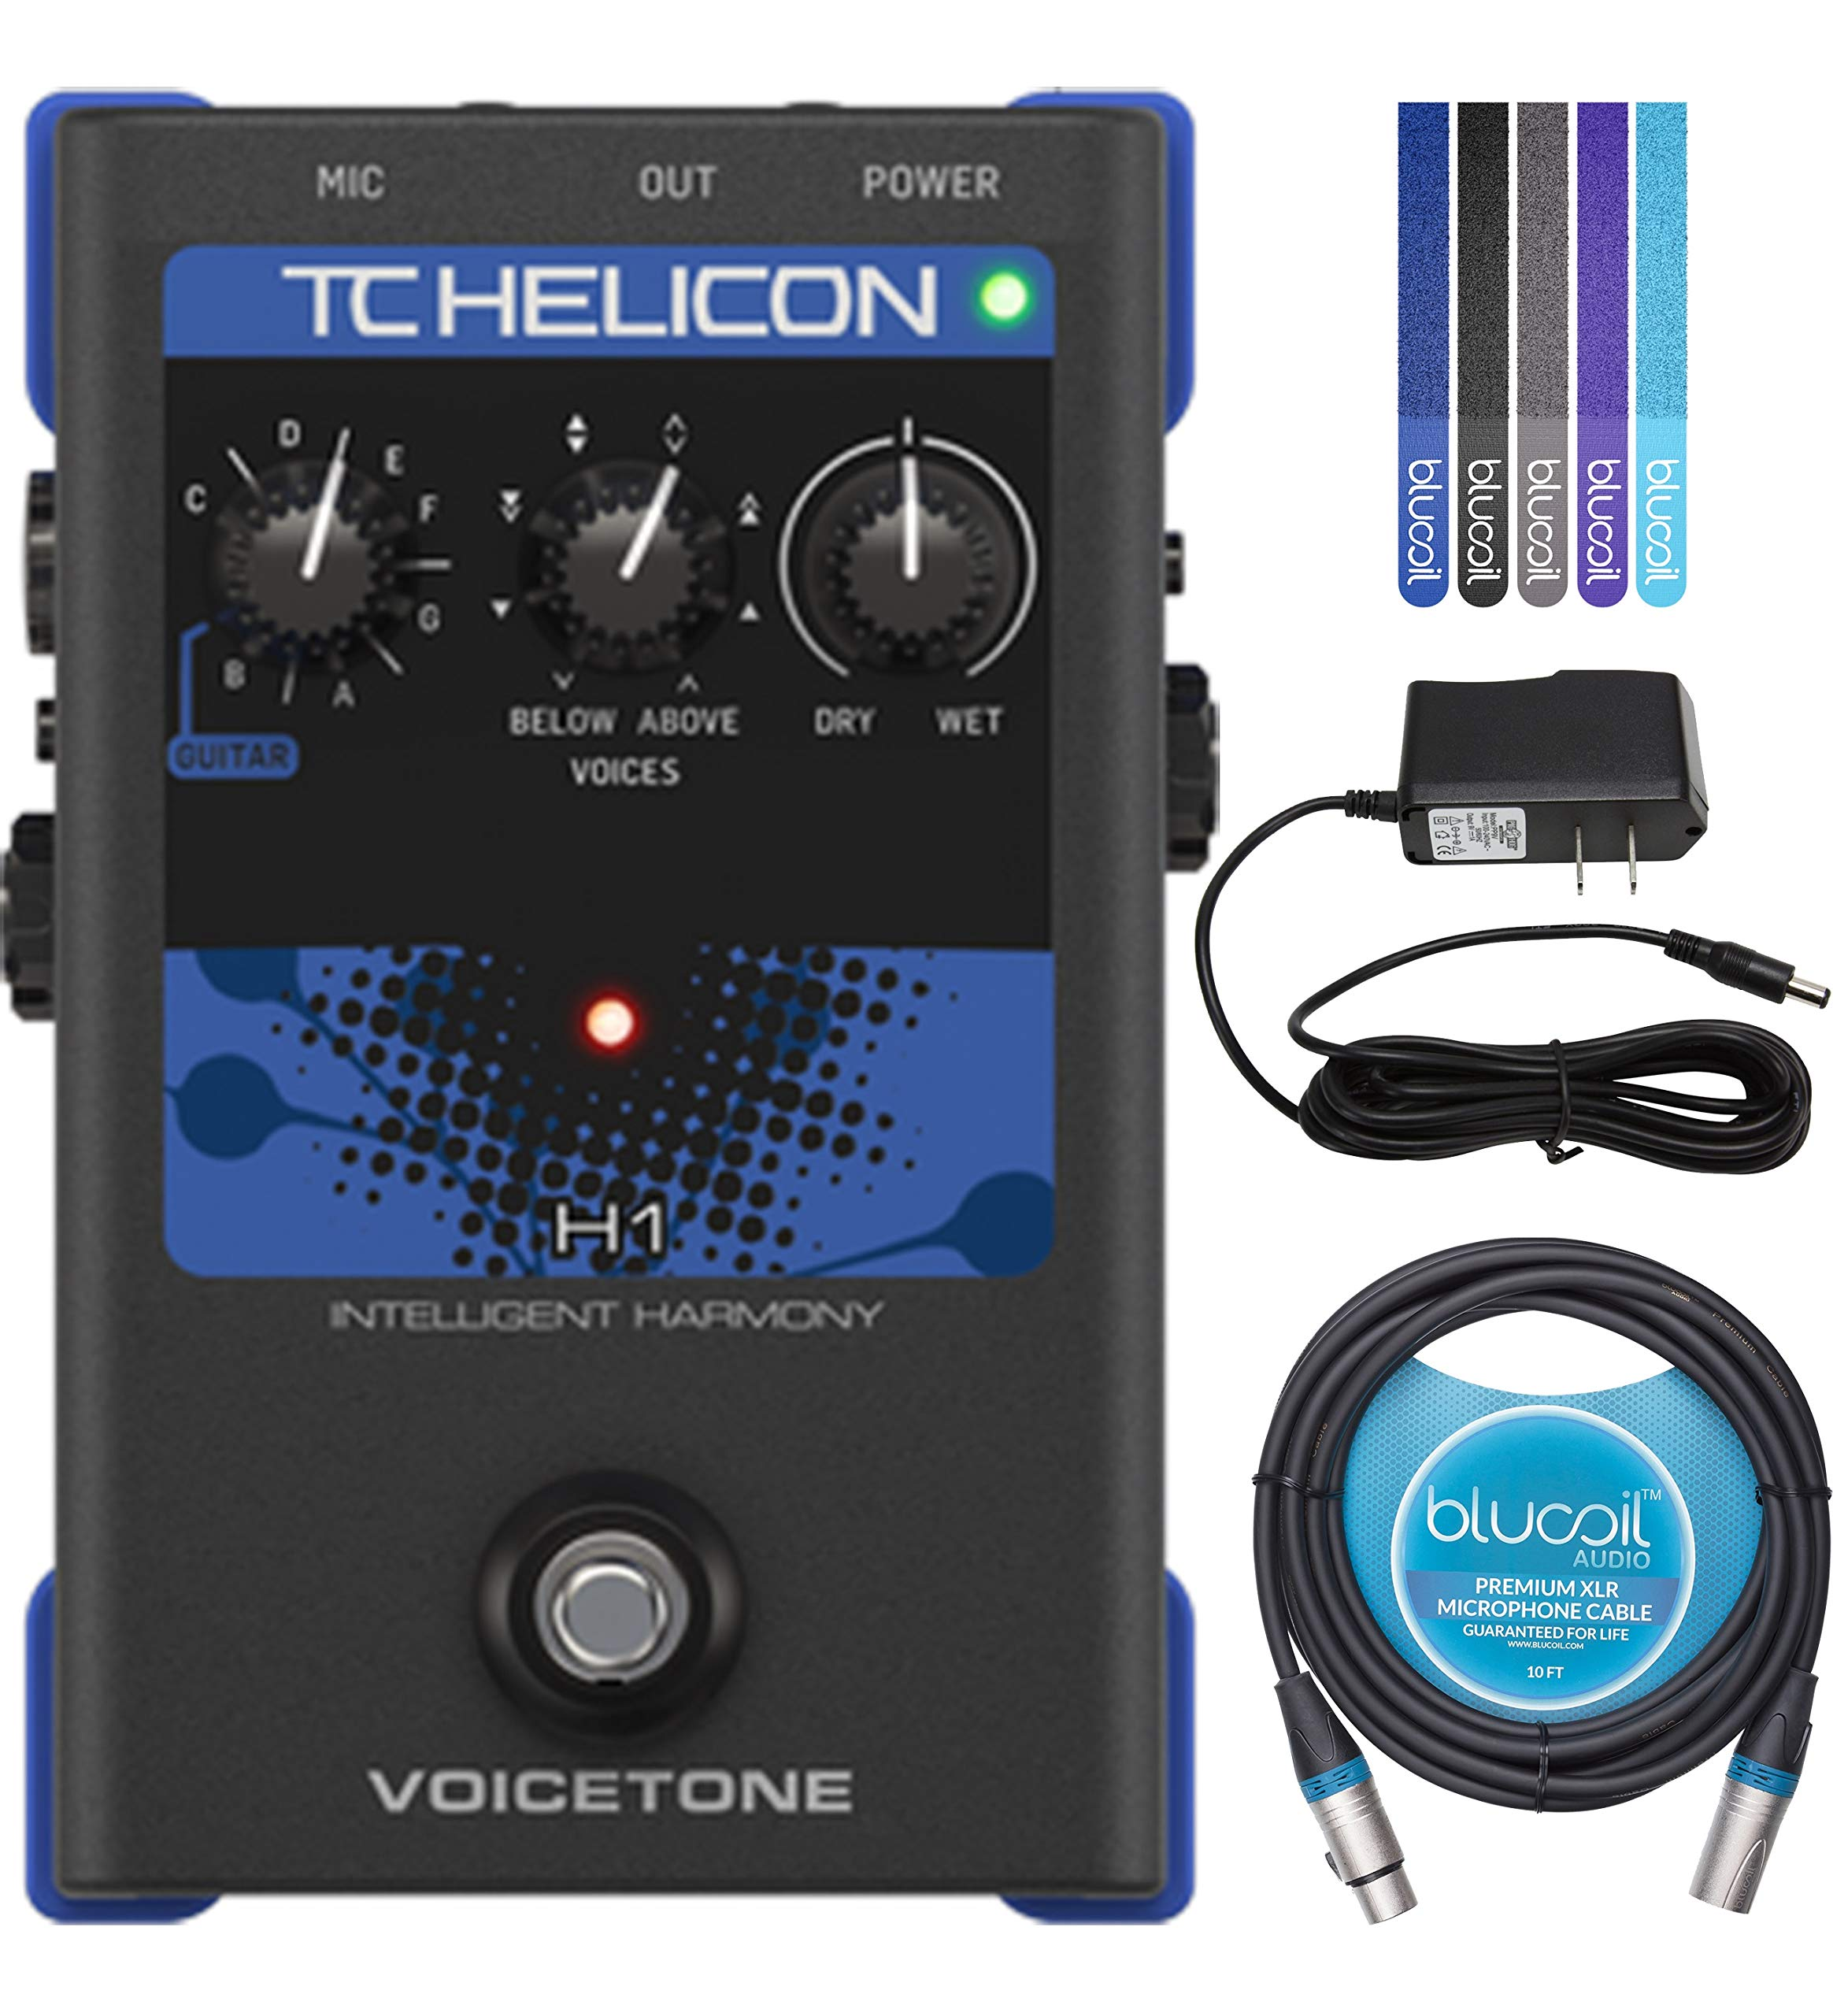 TC Helicon VoiceTone H1 Vocal Effects Pedal Bundle with 12V 400mA DC Power Supply, Blucoil 10-FT Balanced XLR Cable, and 5-Pack of Reusable Cable Ties